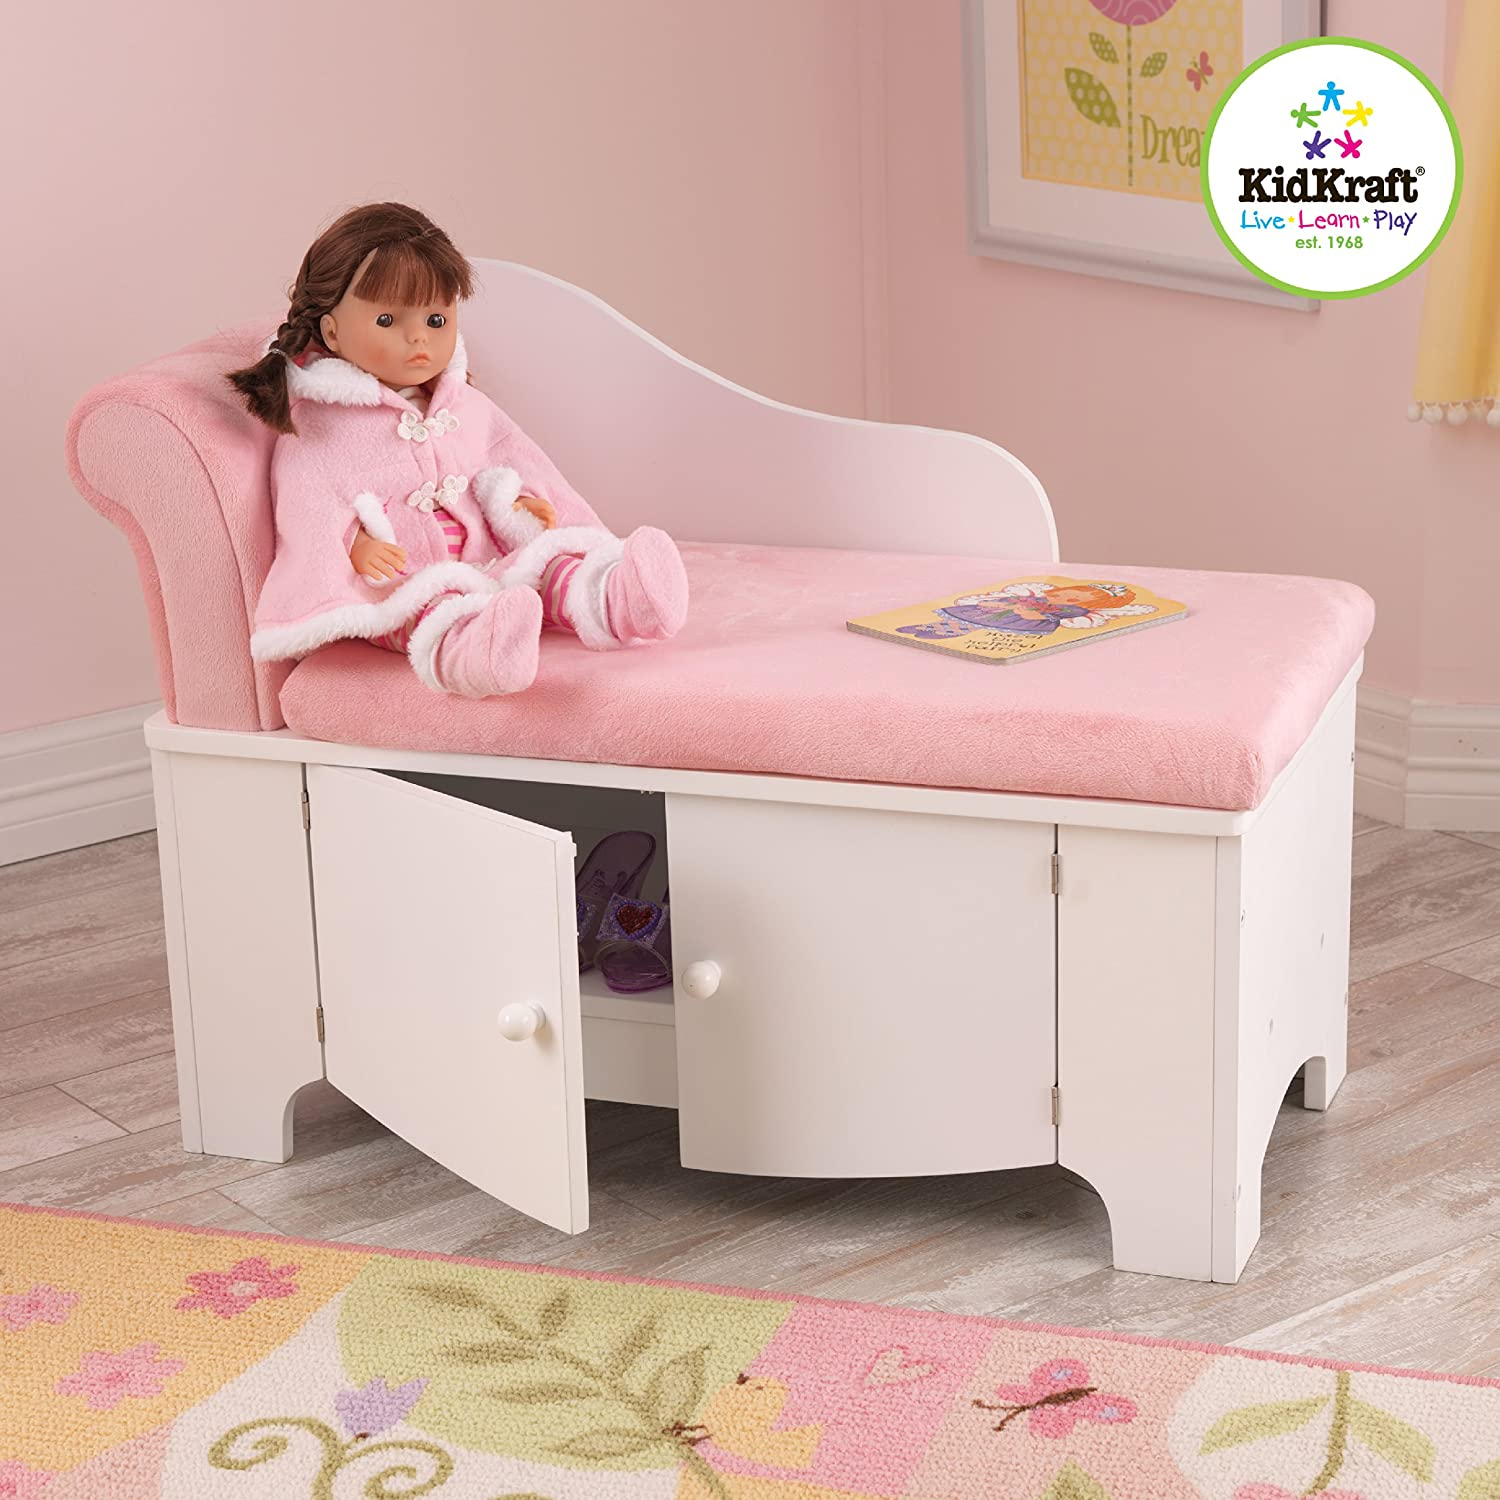 Amazon KidKraft Girl s Princess Chaise Lounge Toys & Games